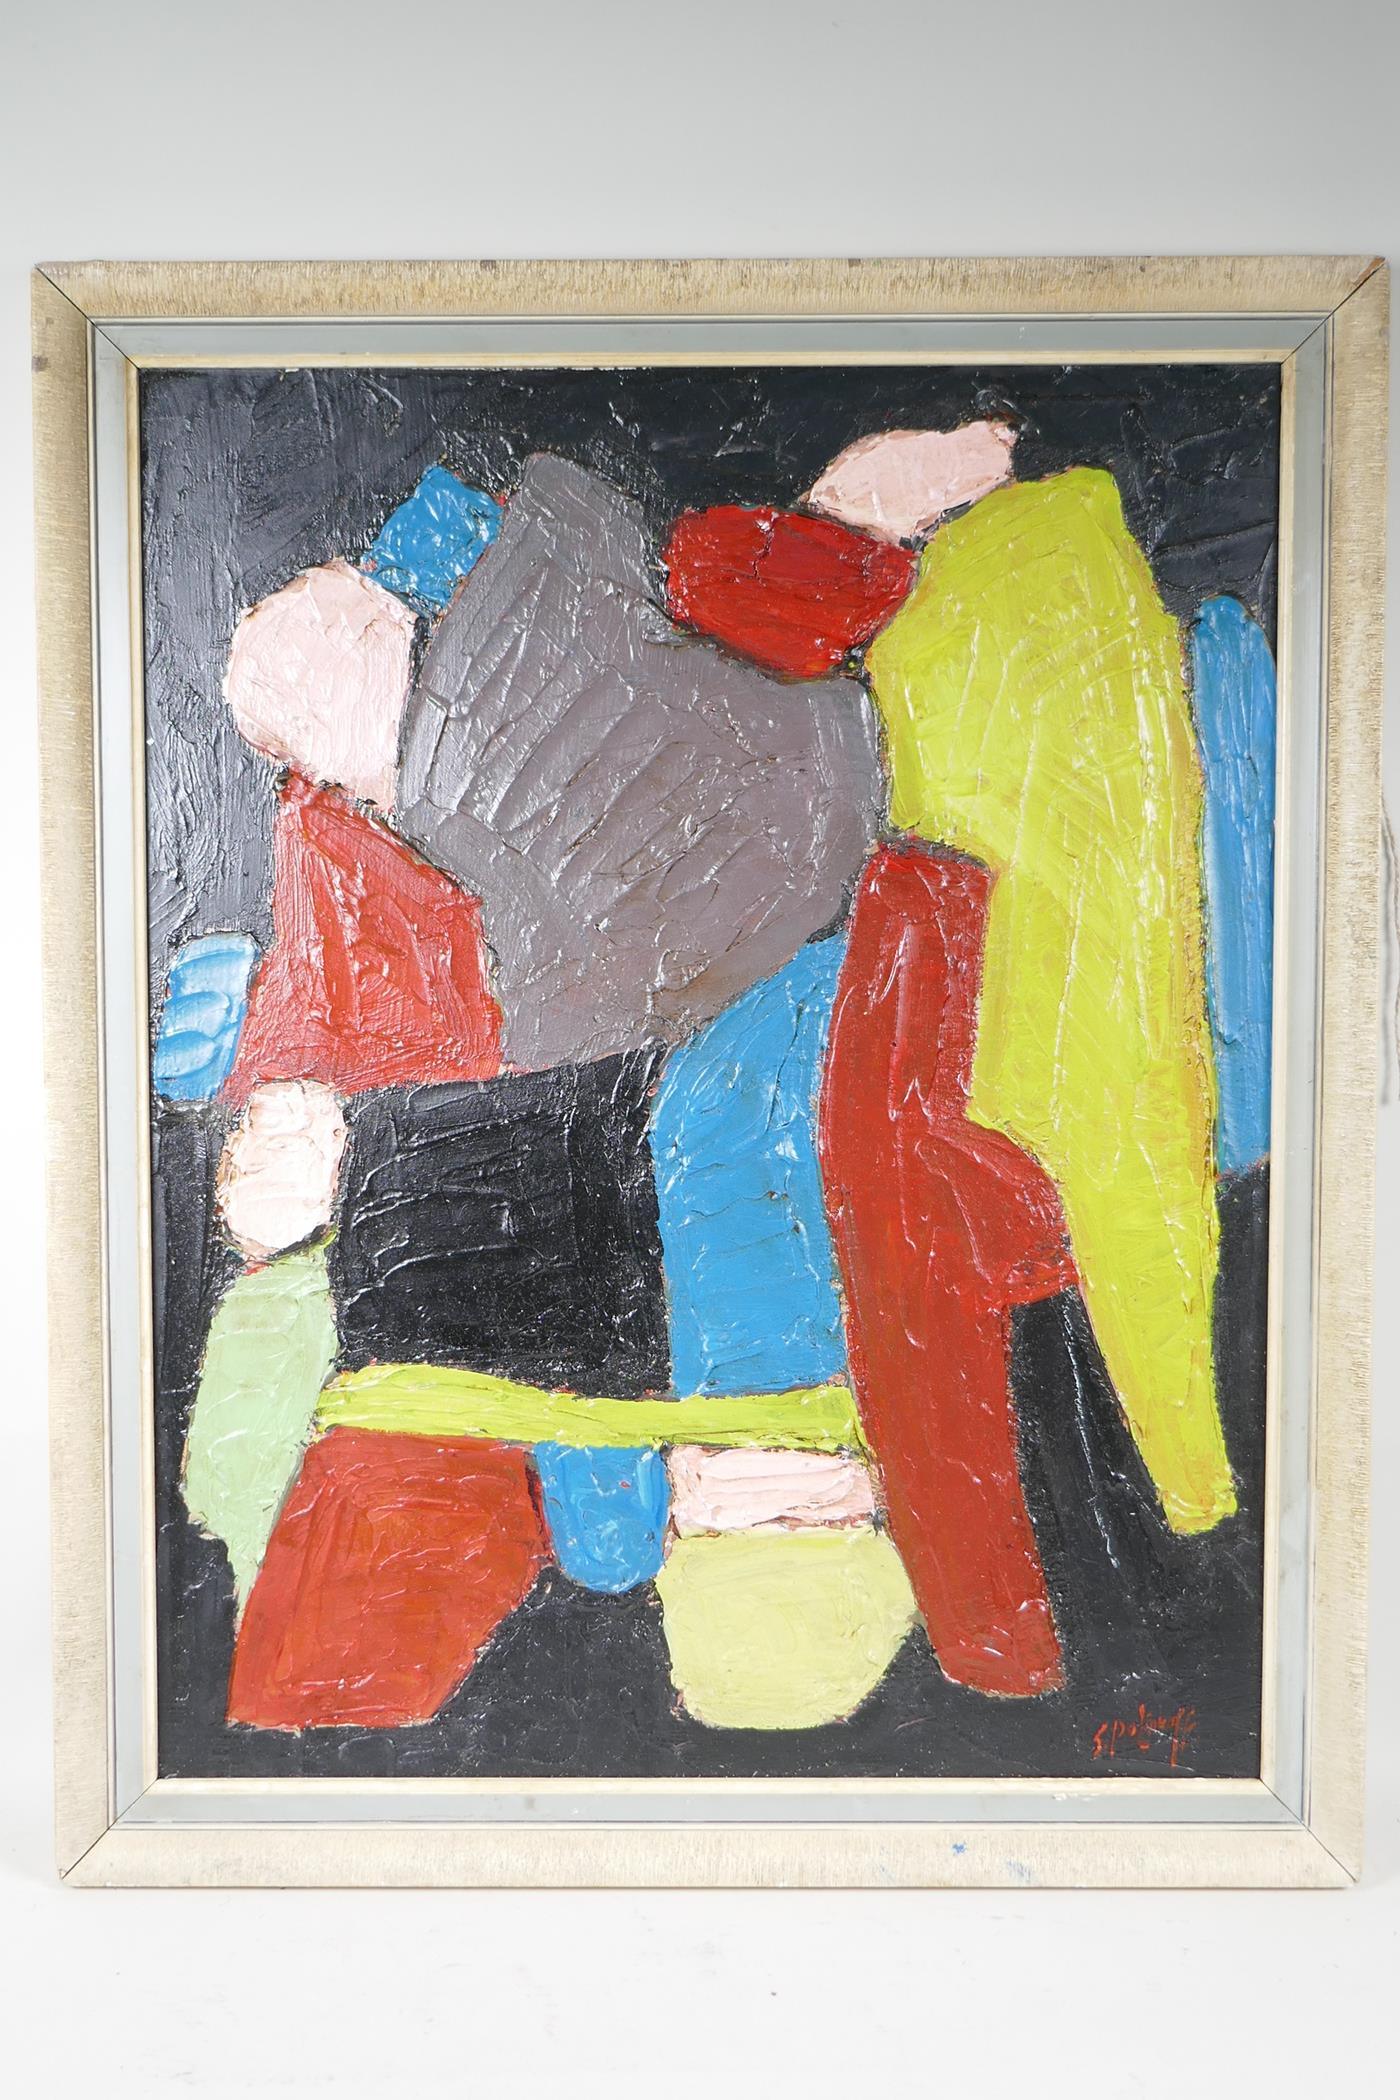 """After Serge Poliakoff, abstract, oil on board, 20"""" x 25"""" - Image 2 of 4"""